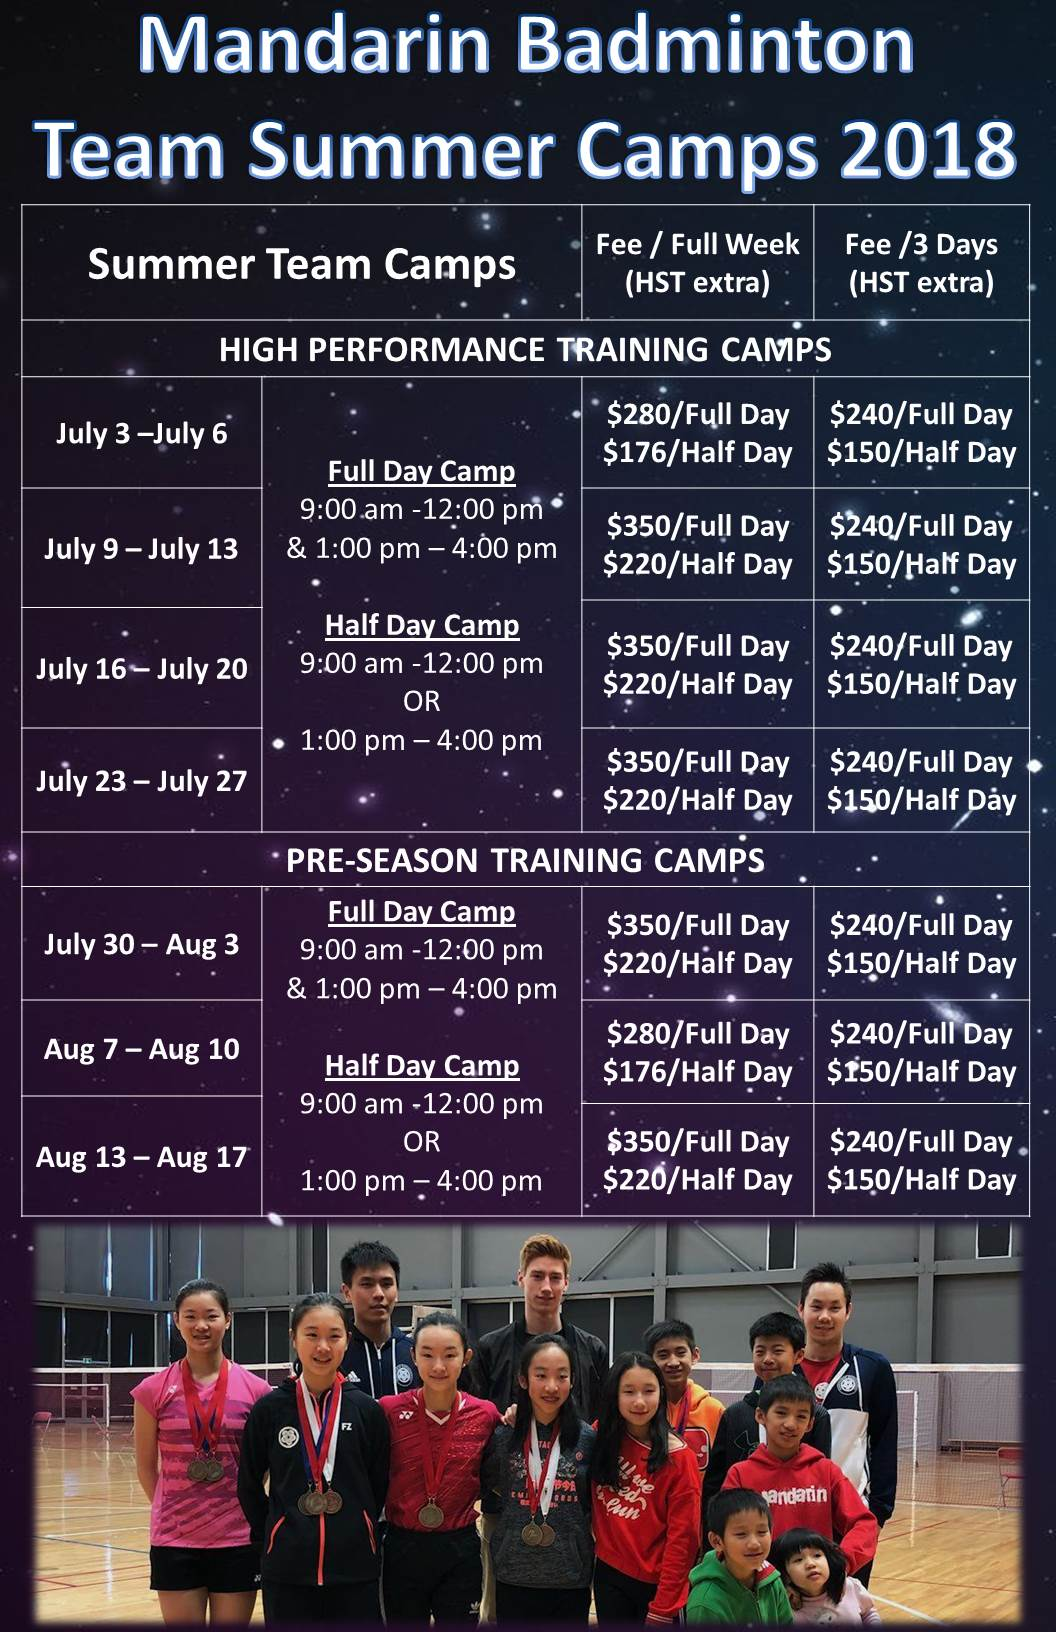 2018 Summer Training Camps (Team members)